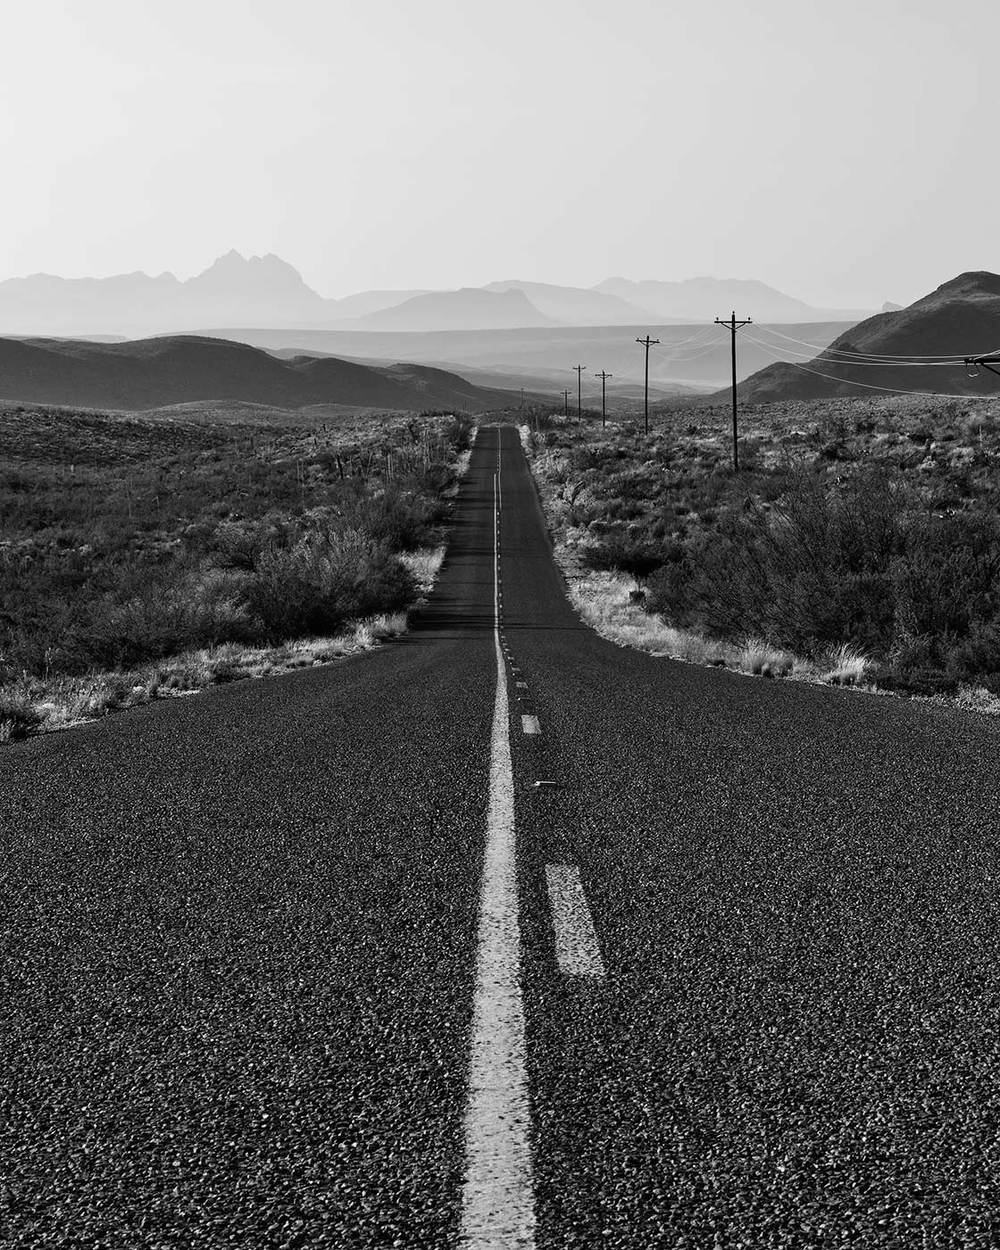 West-Texas-ABP-Black-Gap-Road.jpg